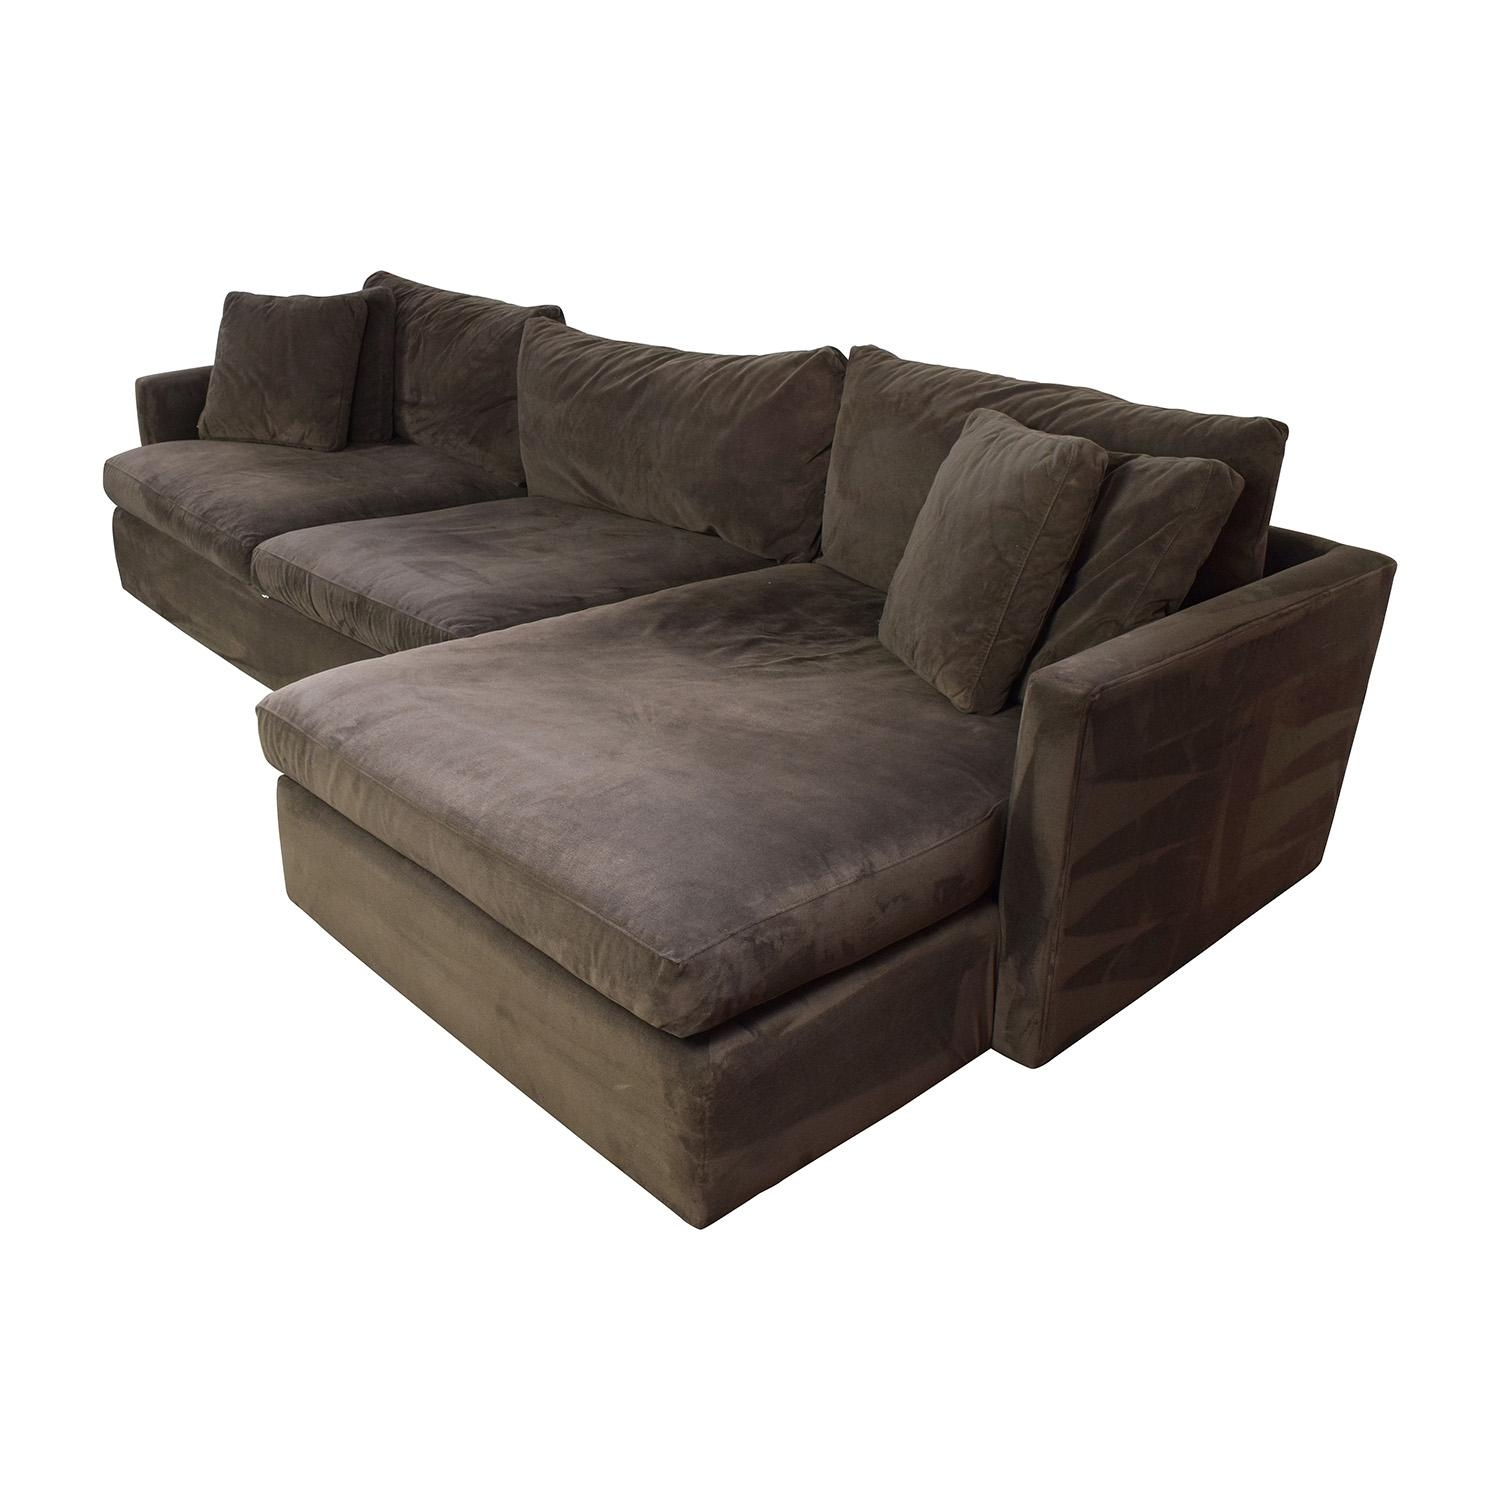 89% Off – Crate And Barrel Crate & Barrel Brown Left Arm Sectional Within Crate And Barrel Sectional (Photo 5 of 15)